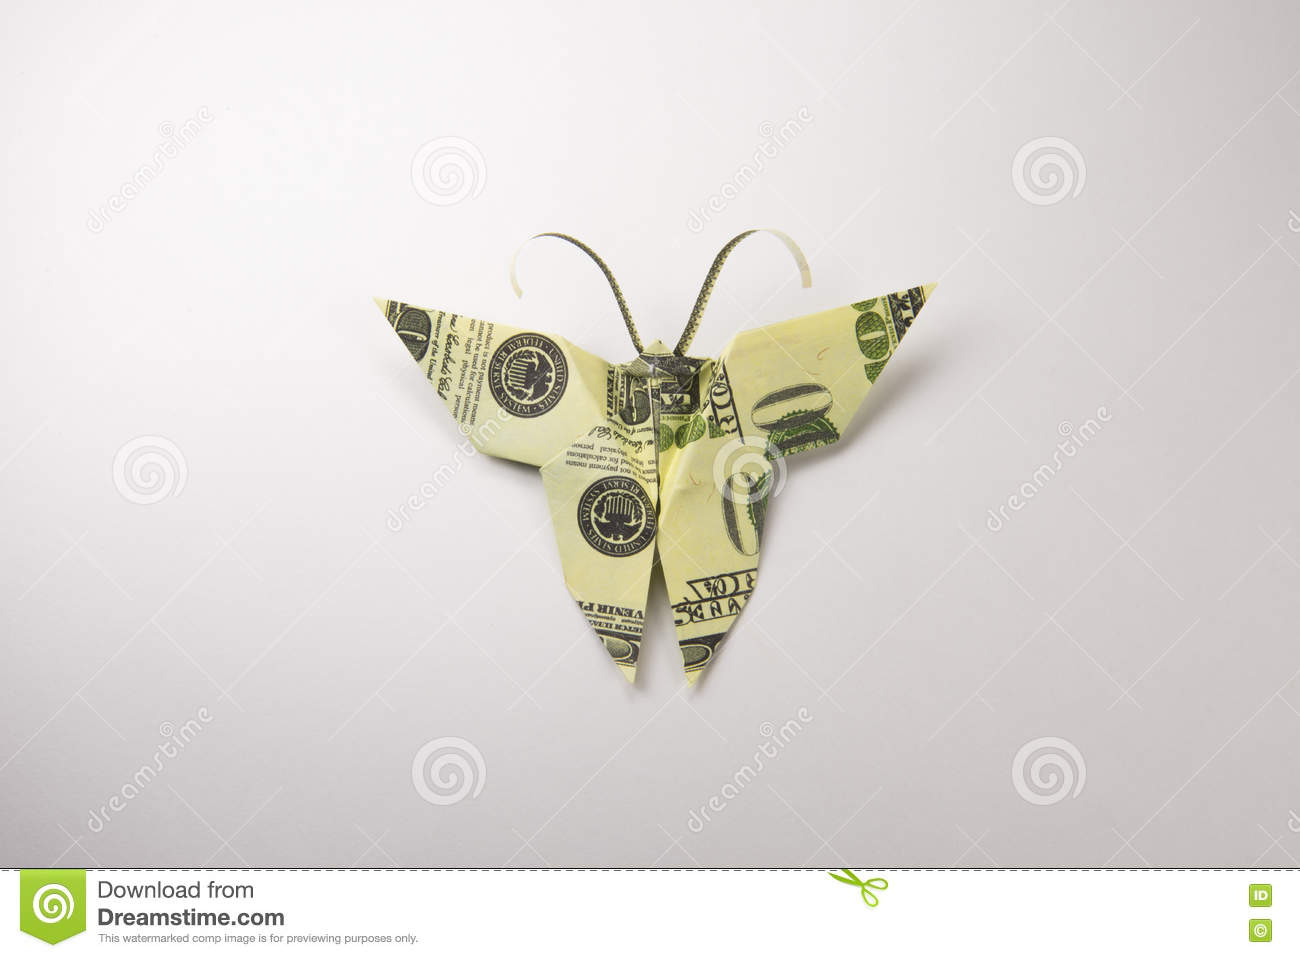 Pin by Muhammed ERDOĞAN on Origami | Origami butterfly instructions, Dollar  bill origami, Dollar origami | 958x1300